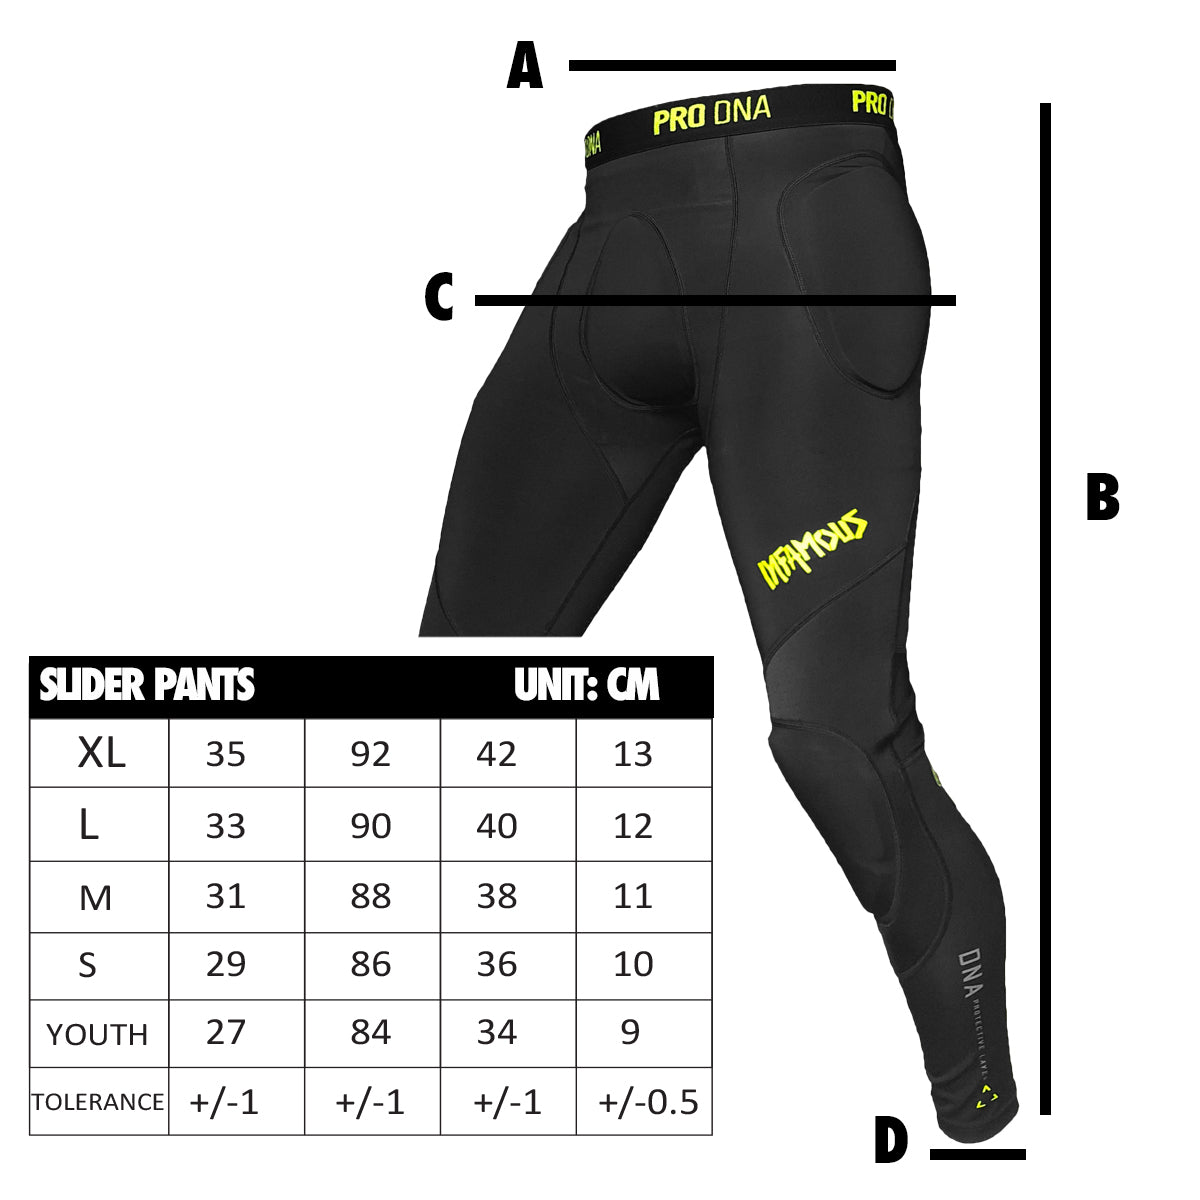 Infamous PRO DNA Slide Pants